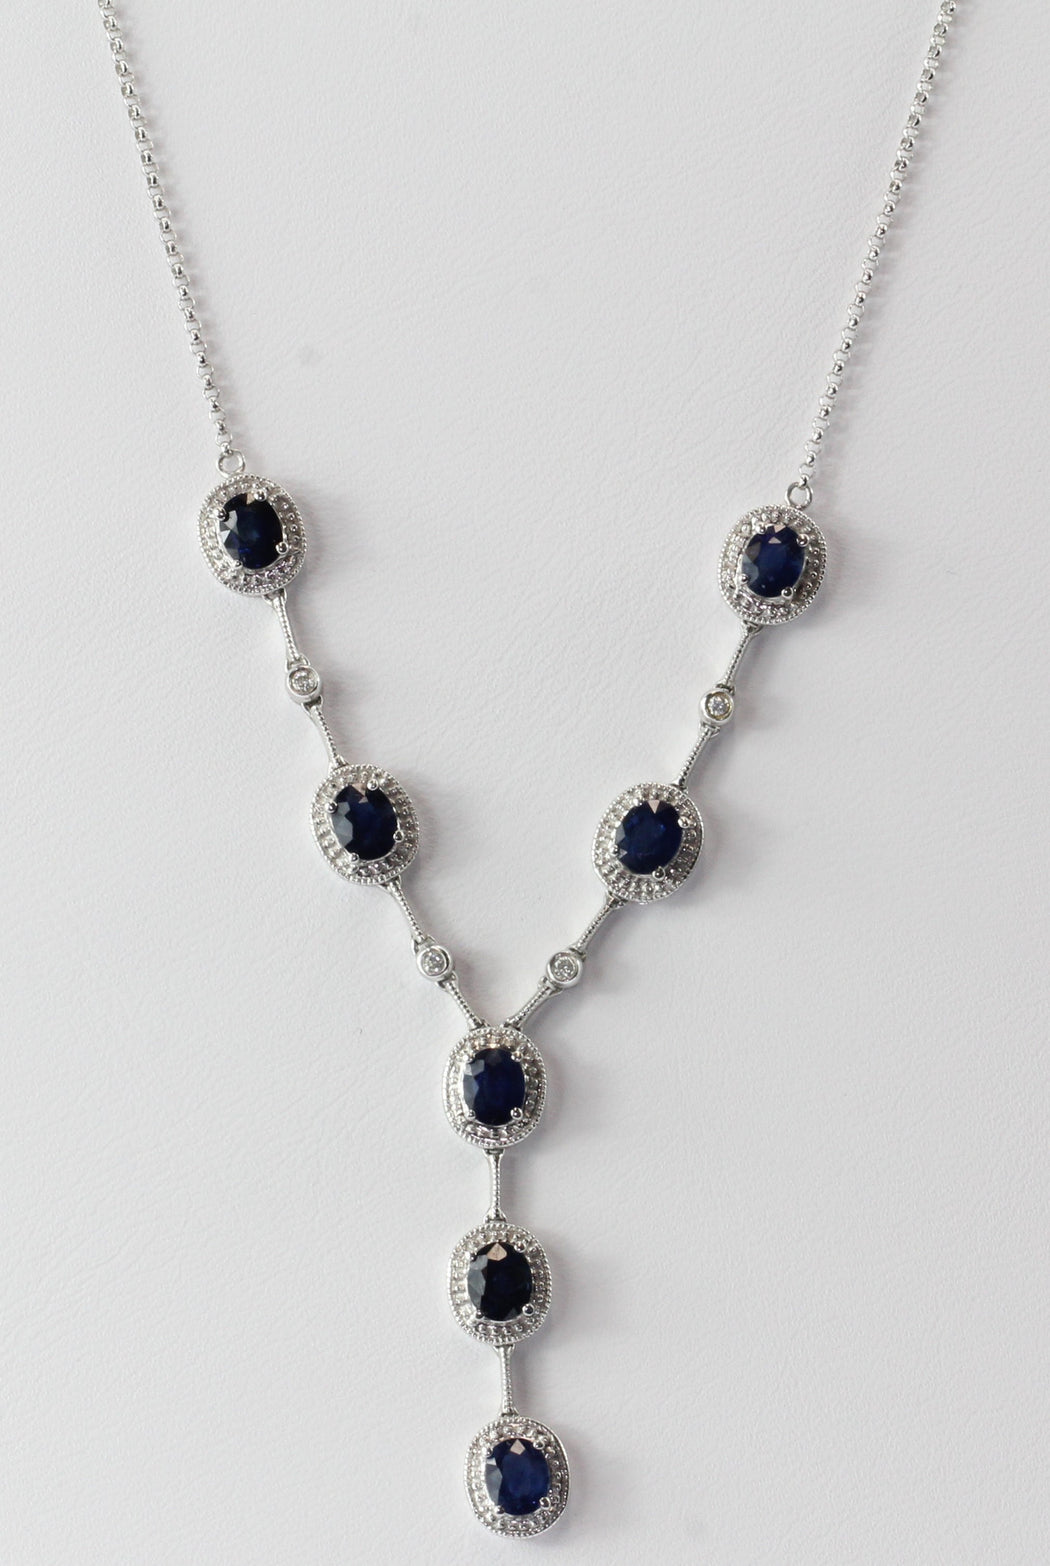 14K White Gold Natural Sapphire & Diamond Necklace